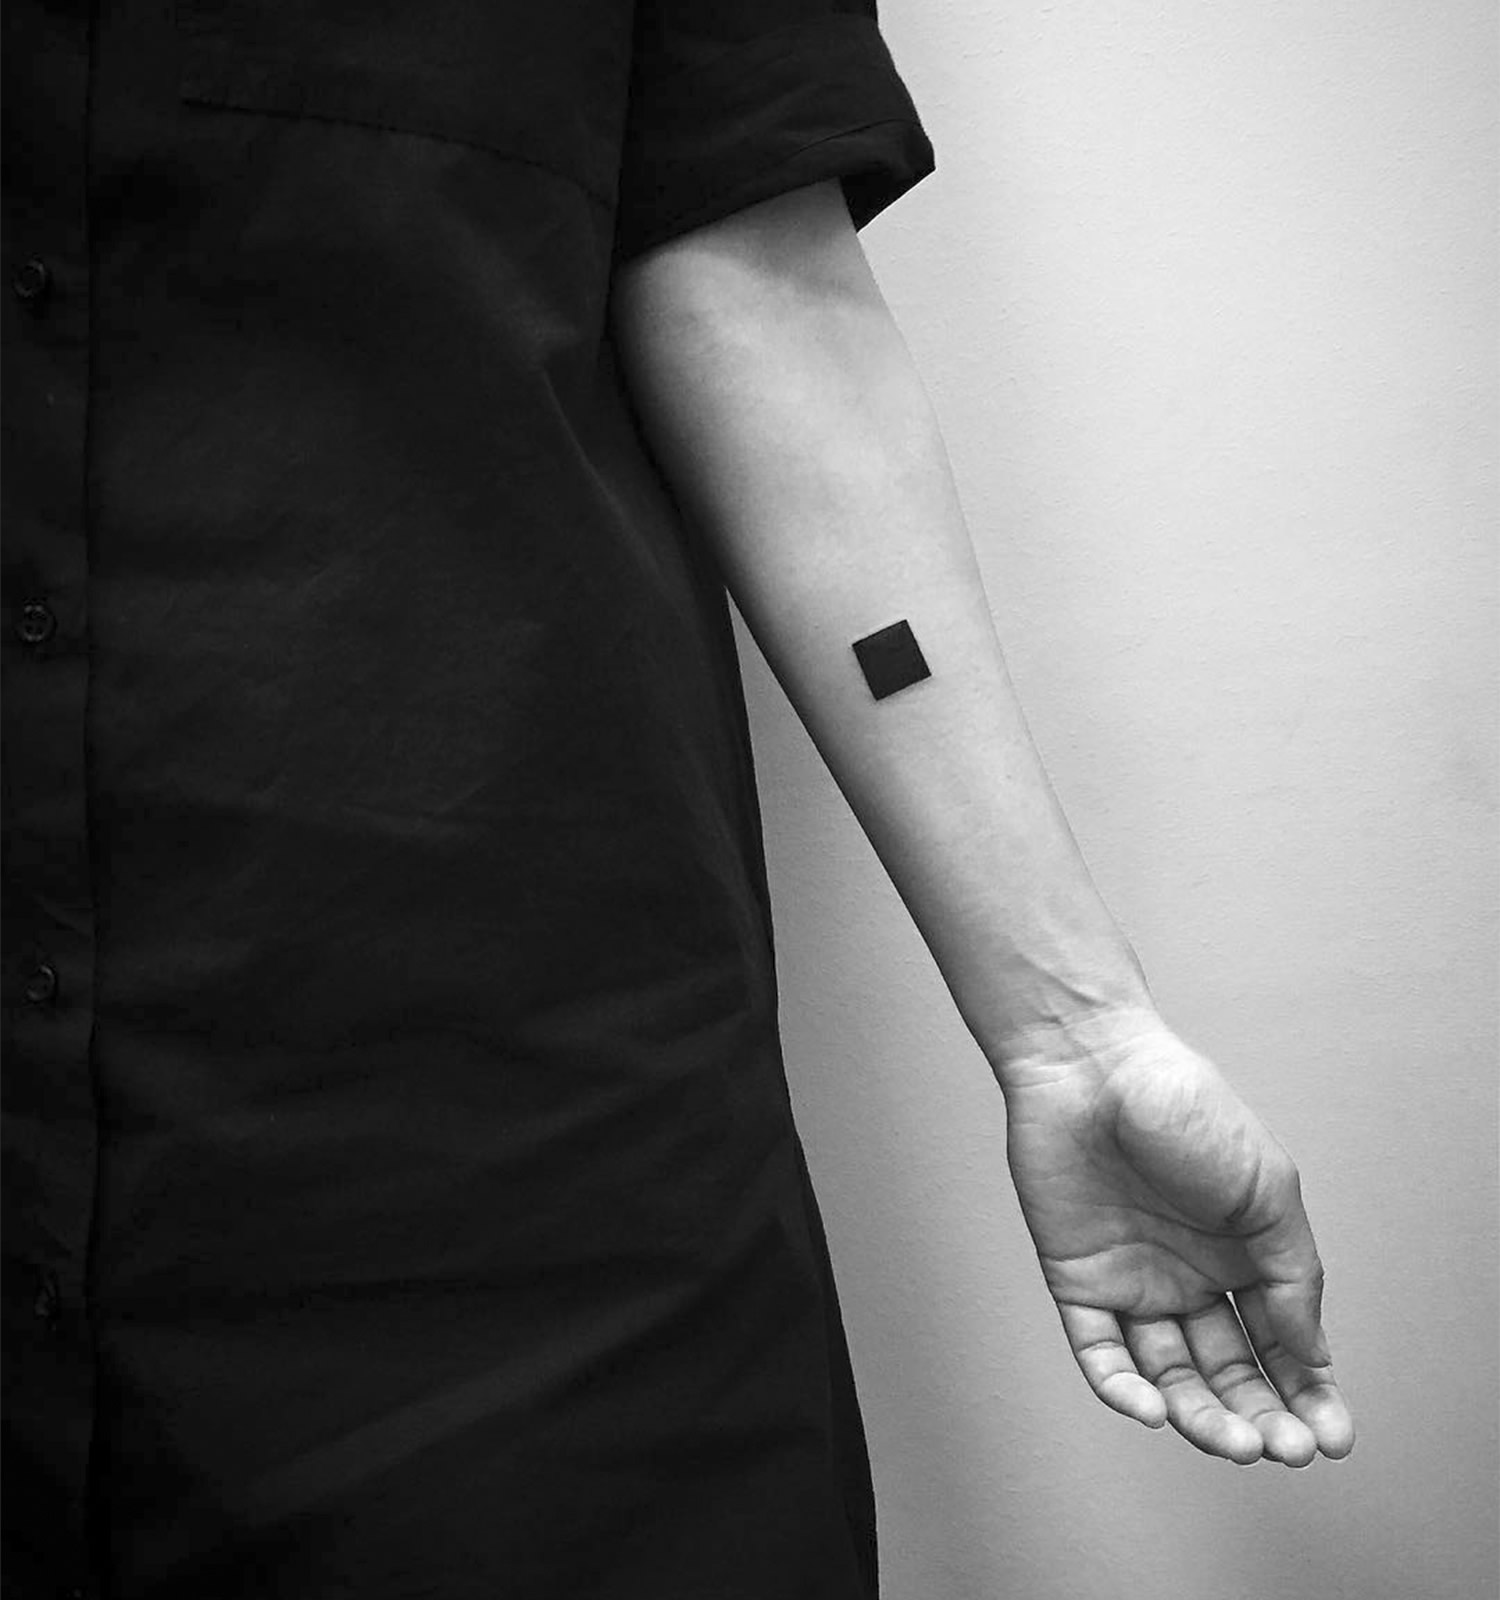 one black square on arm